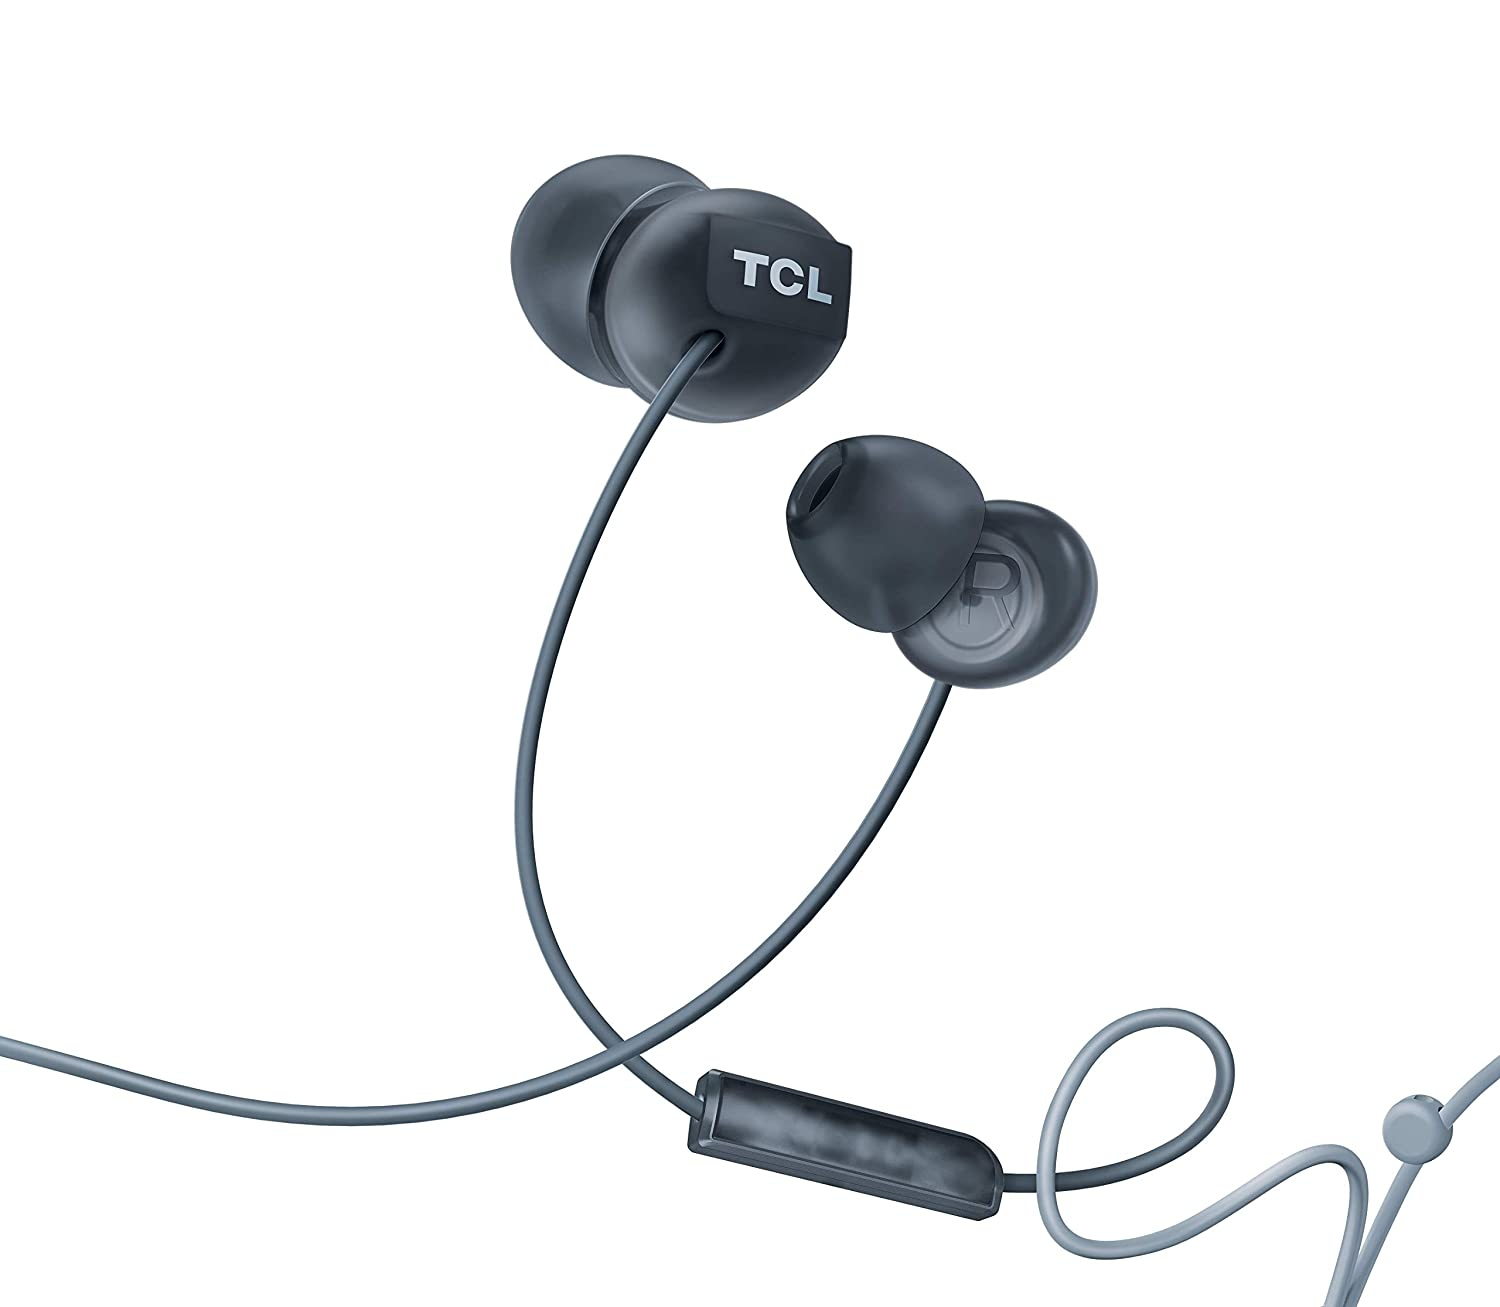 TCL Socl300 in-Ear Earbuds Wired Noise Isolating Headphones with Built-in Mic and Echo Cancellation – Phantom Black